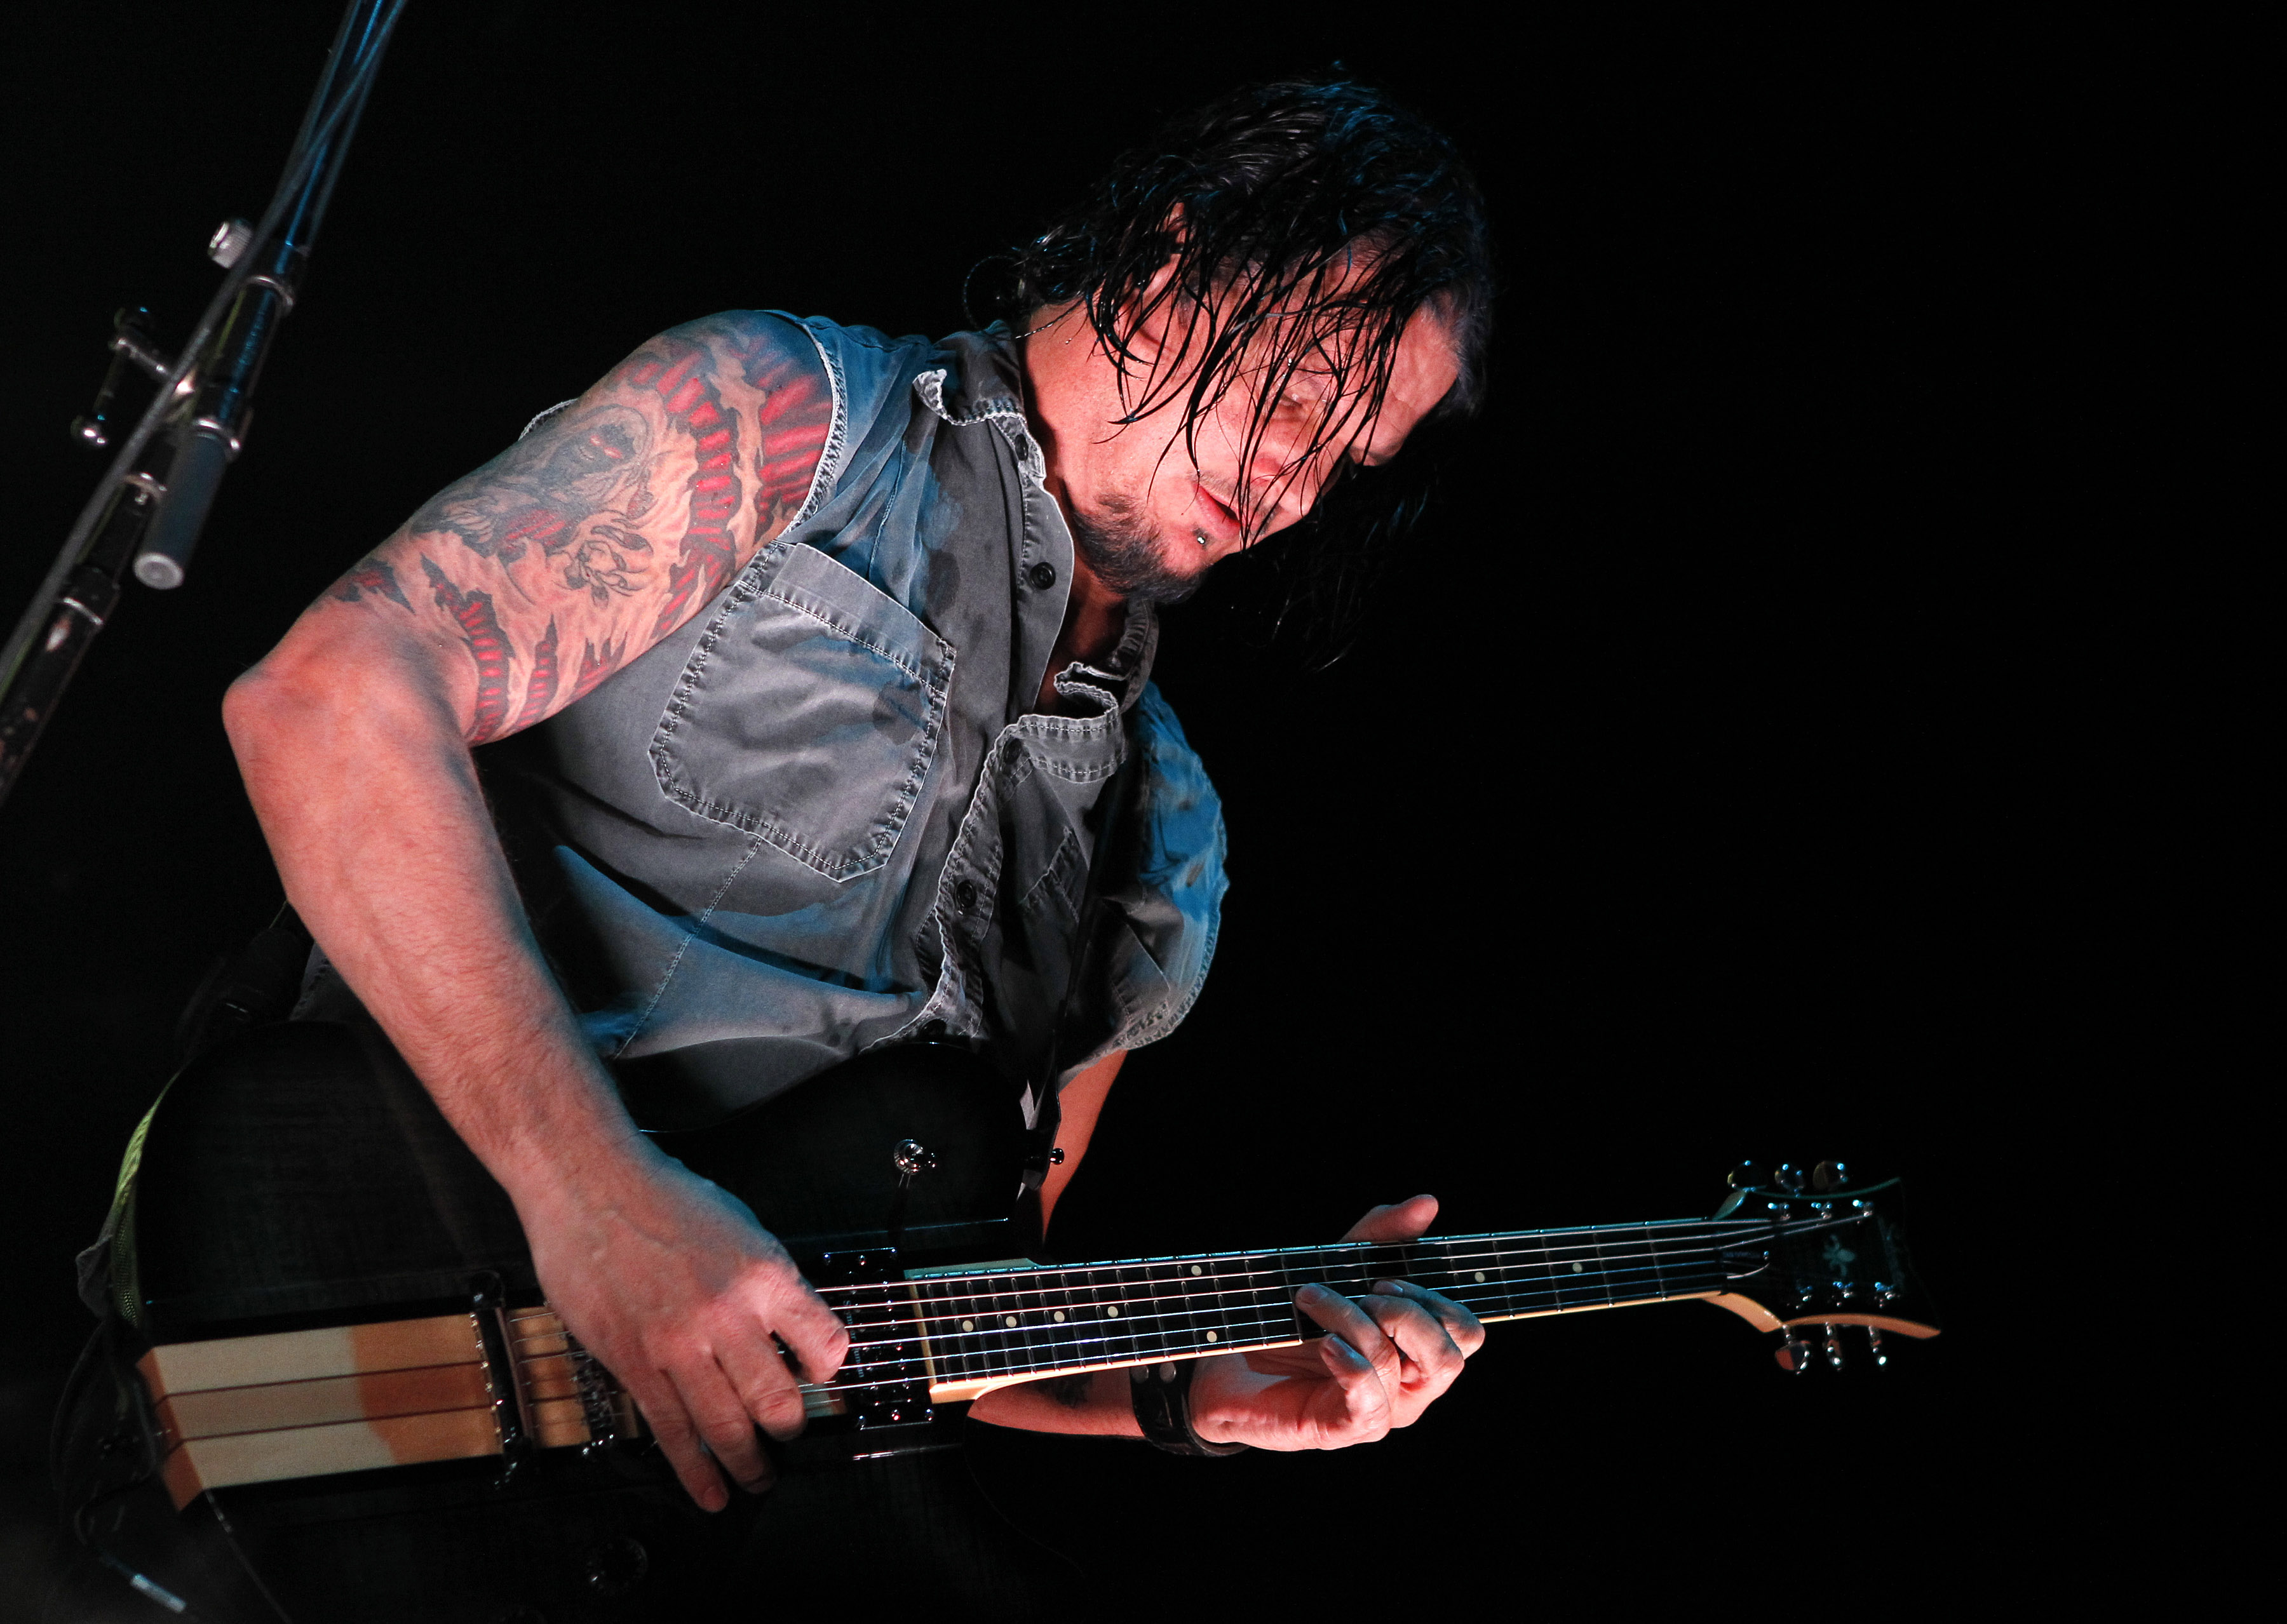 Dan Donegan of Disturbed performs at 'Rockstar Taste of Chaos' at Wembley Arena on December 8, 2010 in London, England. (Phot